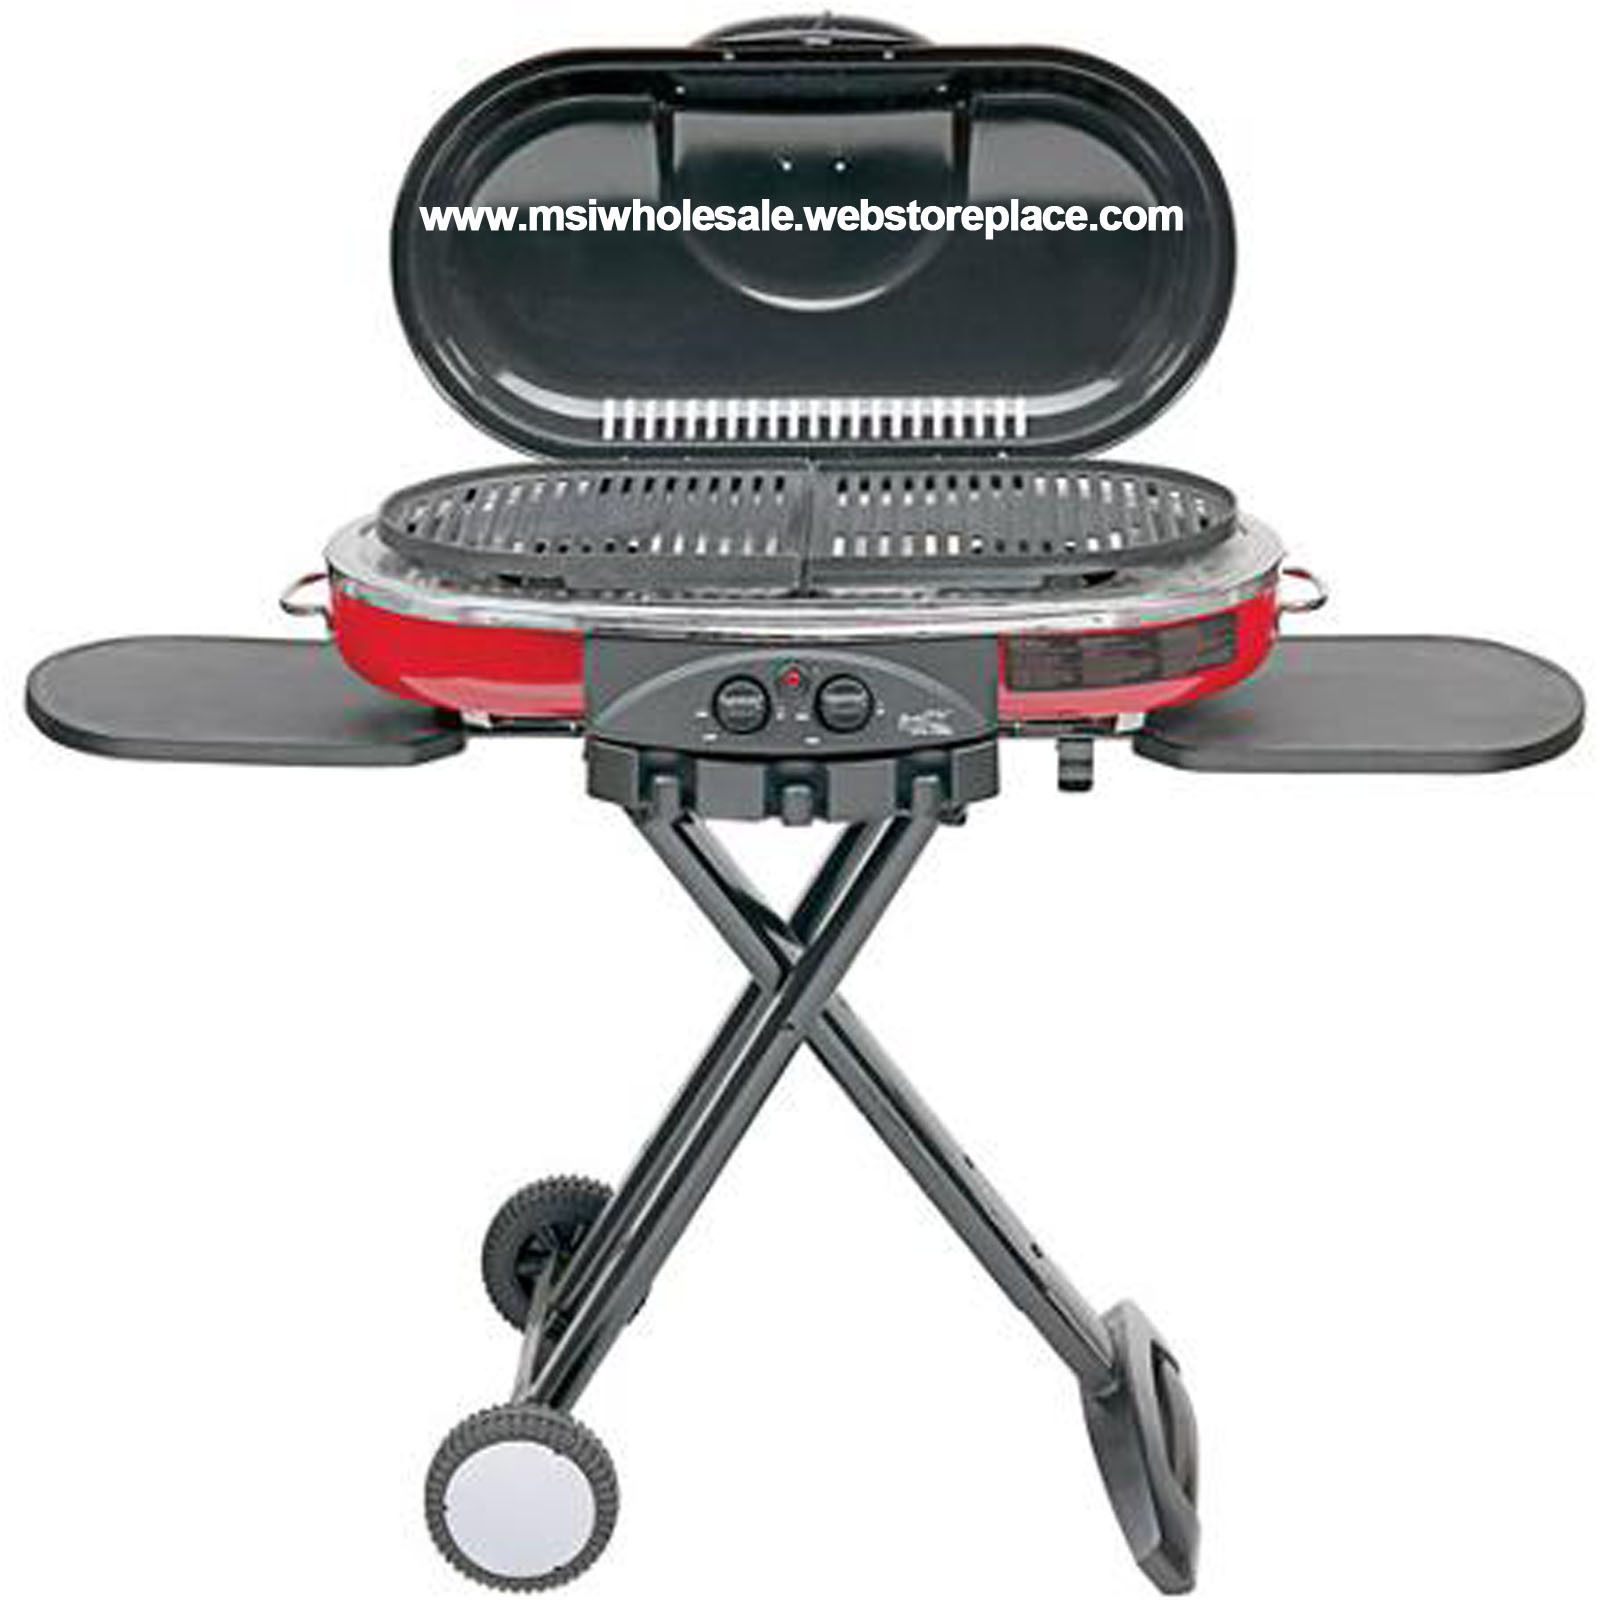 NEW Coleman Lxe Cooking Grill Roadtrip Propane Portable Camping Outdoor Tailgate